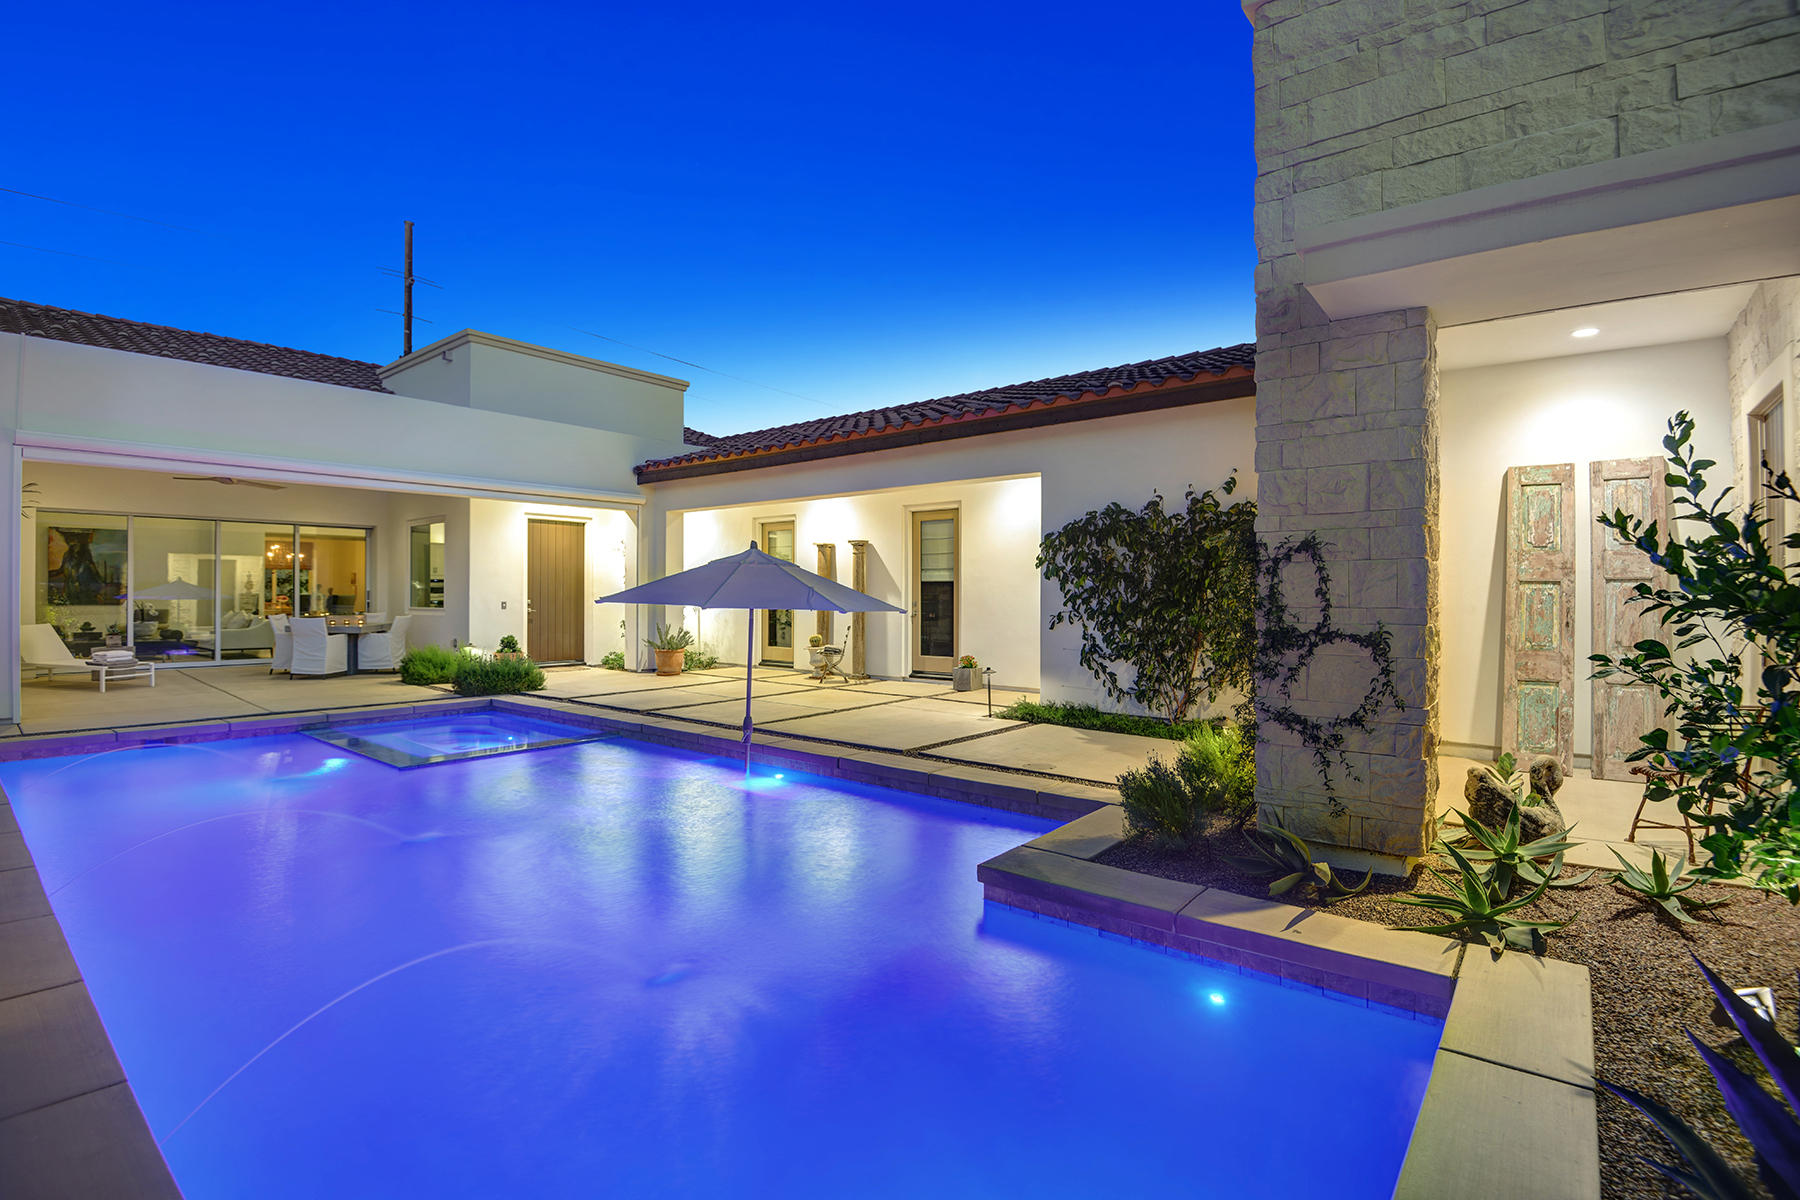 Built in 2018 and located behind the private gates at The Cove at The Citrus! This home offers everything you need to enjoy the desert lifestyle! The paver-stone driveway leads to the spacious private courtyard entrance with pool, spa, outdoor fireplace & large covered patio area overlooking the mountains that makes for great outdoor entertaining! Step inside to this open floor-plan with large tile flooring & vaulted ceilings. This Santa Barbara floor-plan offers a bright and open great room concept with pocketing doors that lead to the refreshing pool & spa! Culinary kitchen is a cooks dream with stainless appliances, walk in pantry, gas range, quartz counters, large island & soft white cabinetry! Master suite with large walk in closet, double vanities, soaking tub & walk in shower! Your family & friends will love the guest rooms with their own en-suites that offers great privacy! Great opportunity to move right into a home that is less then one year old!